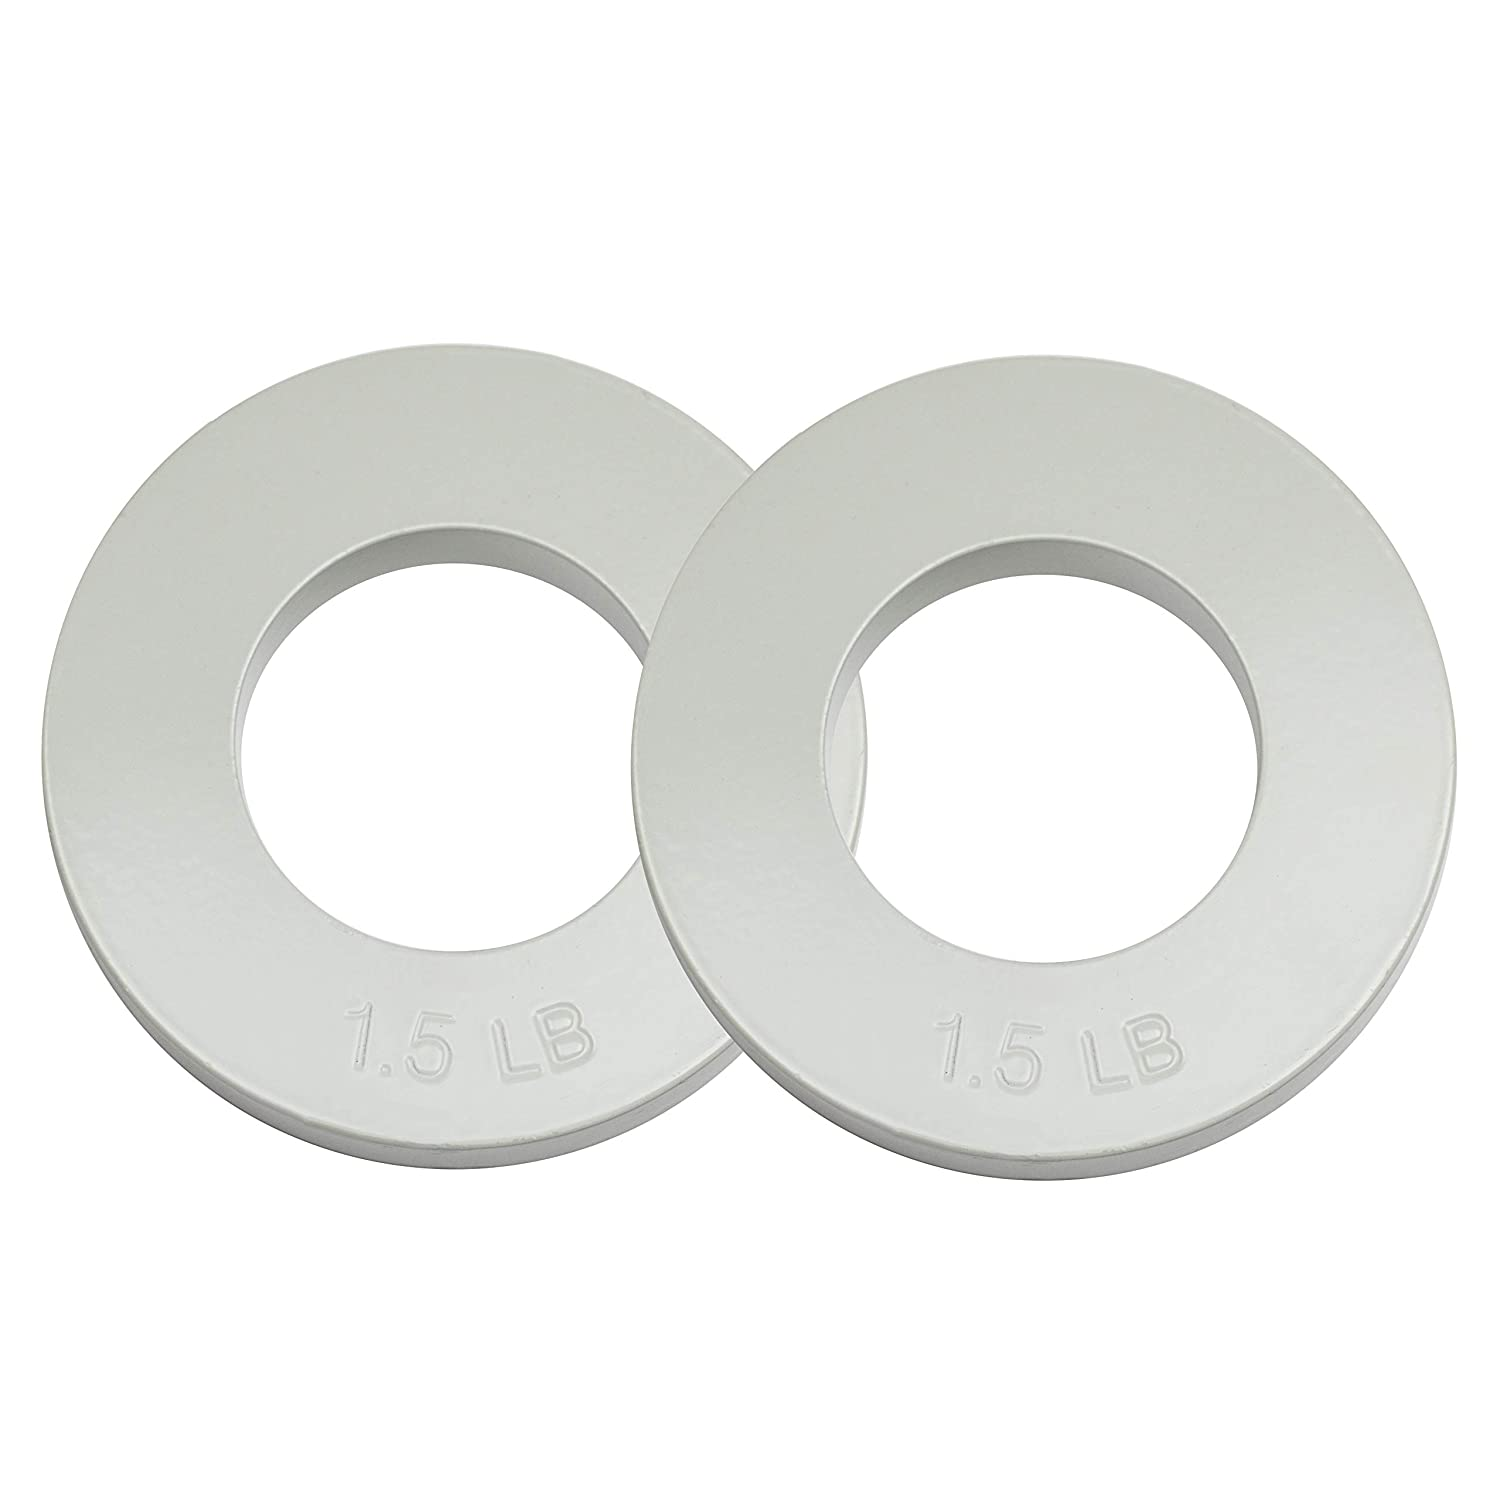 Logest Fractional Olympic Plates Set of 2 Plates – 1 LB 1.25 LB 1.5 LB Choose Set Fractional Weight Plates Designed for Olympic Barbells for Strength Training and Micro Plates Weight Plates